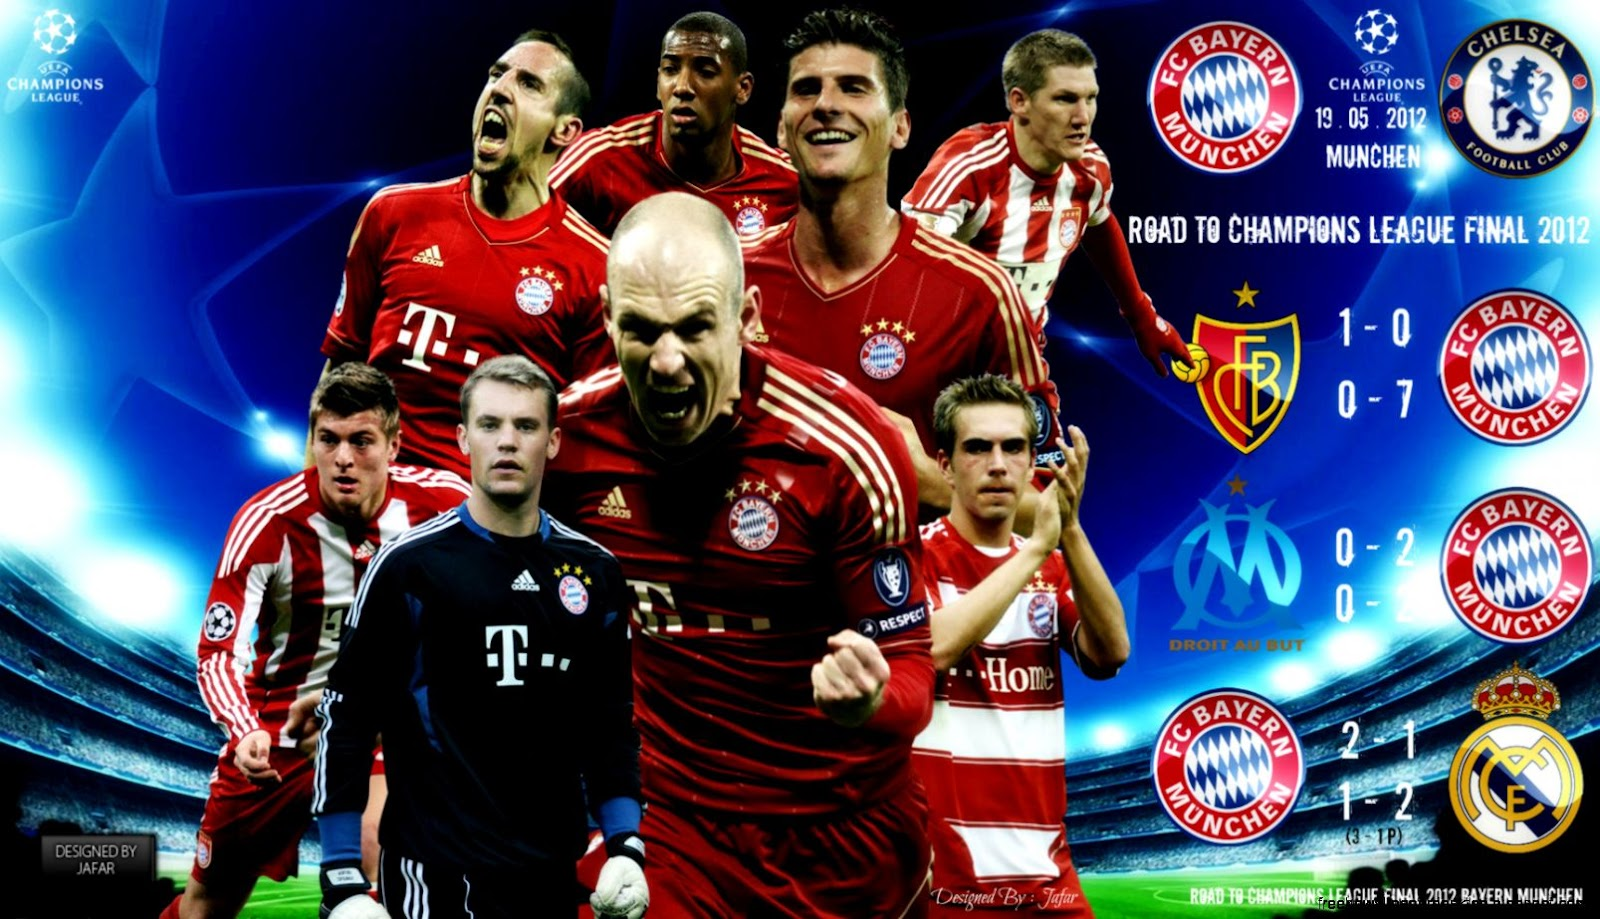 Fc Bayern Munchen Robben Wallpaper Desktop Free High Definition Wallpapers